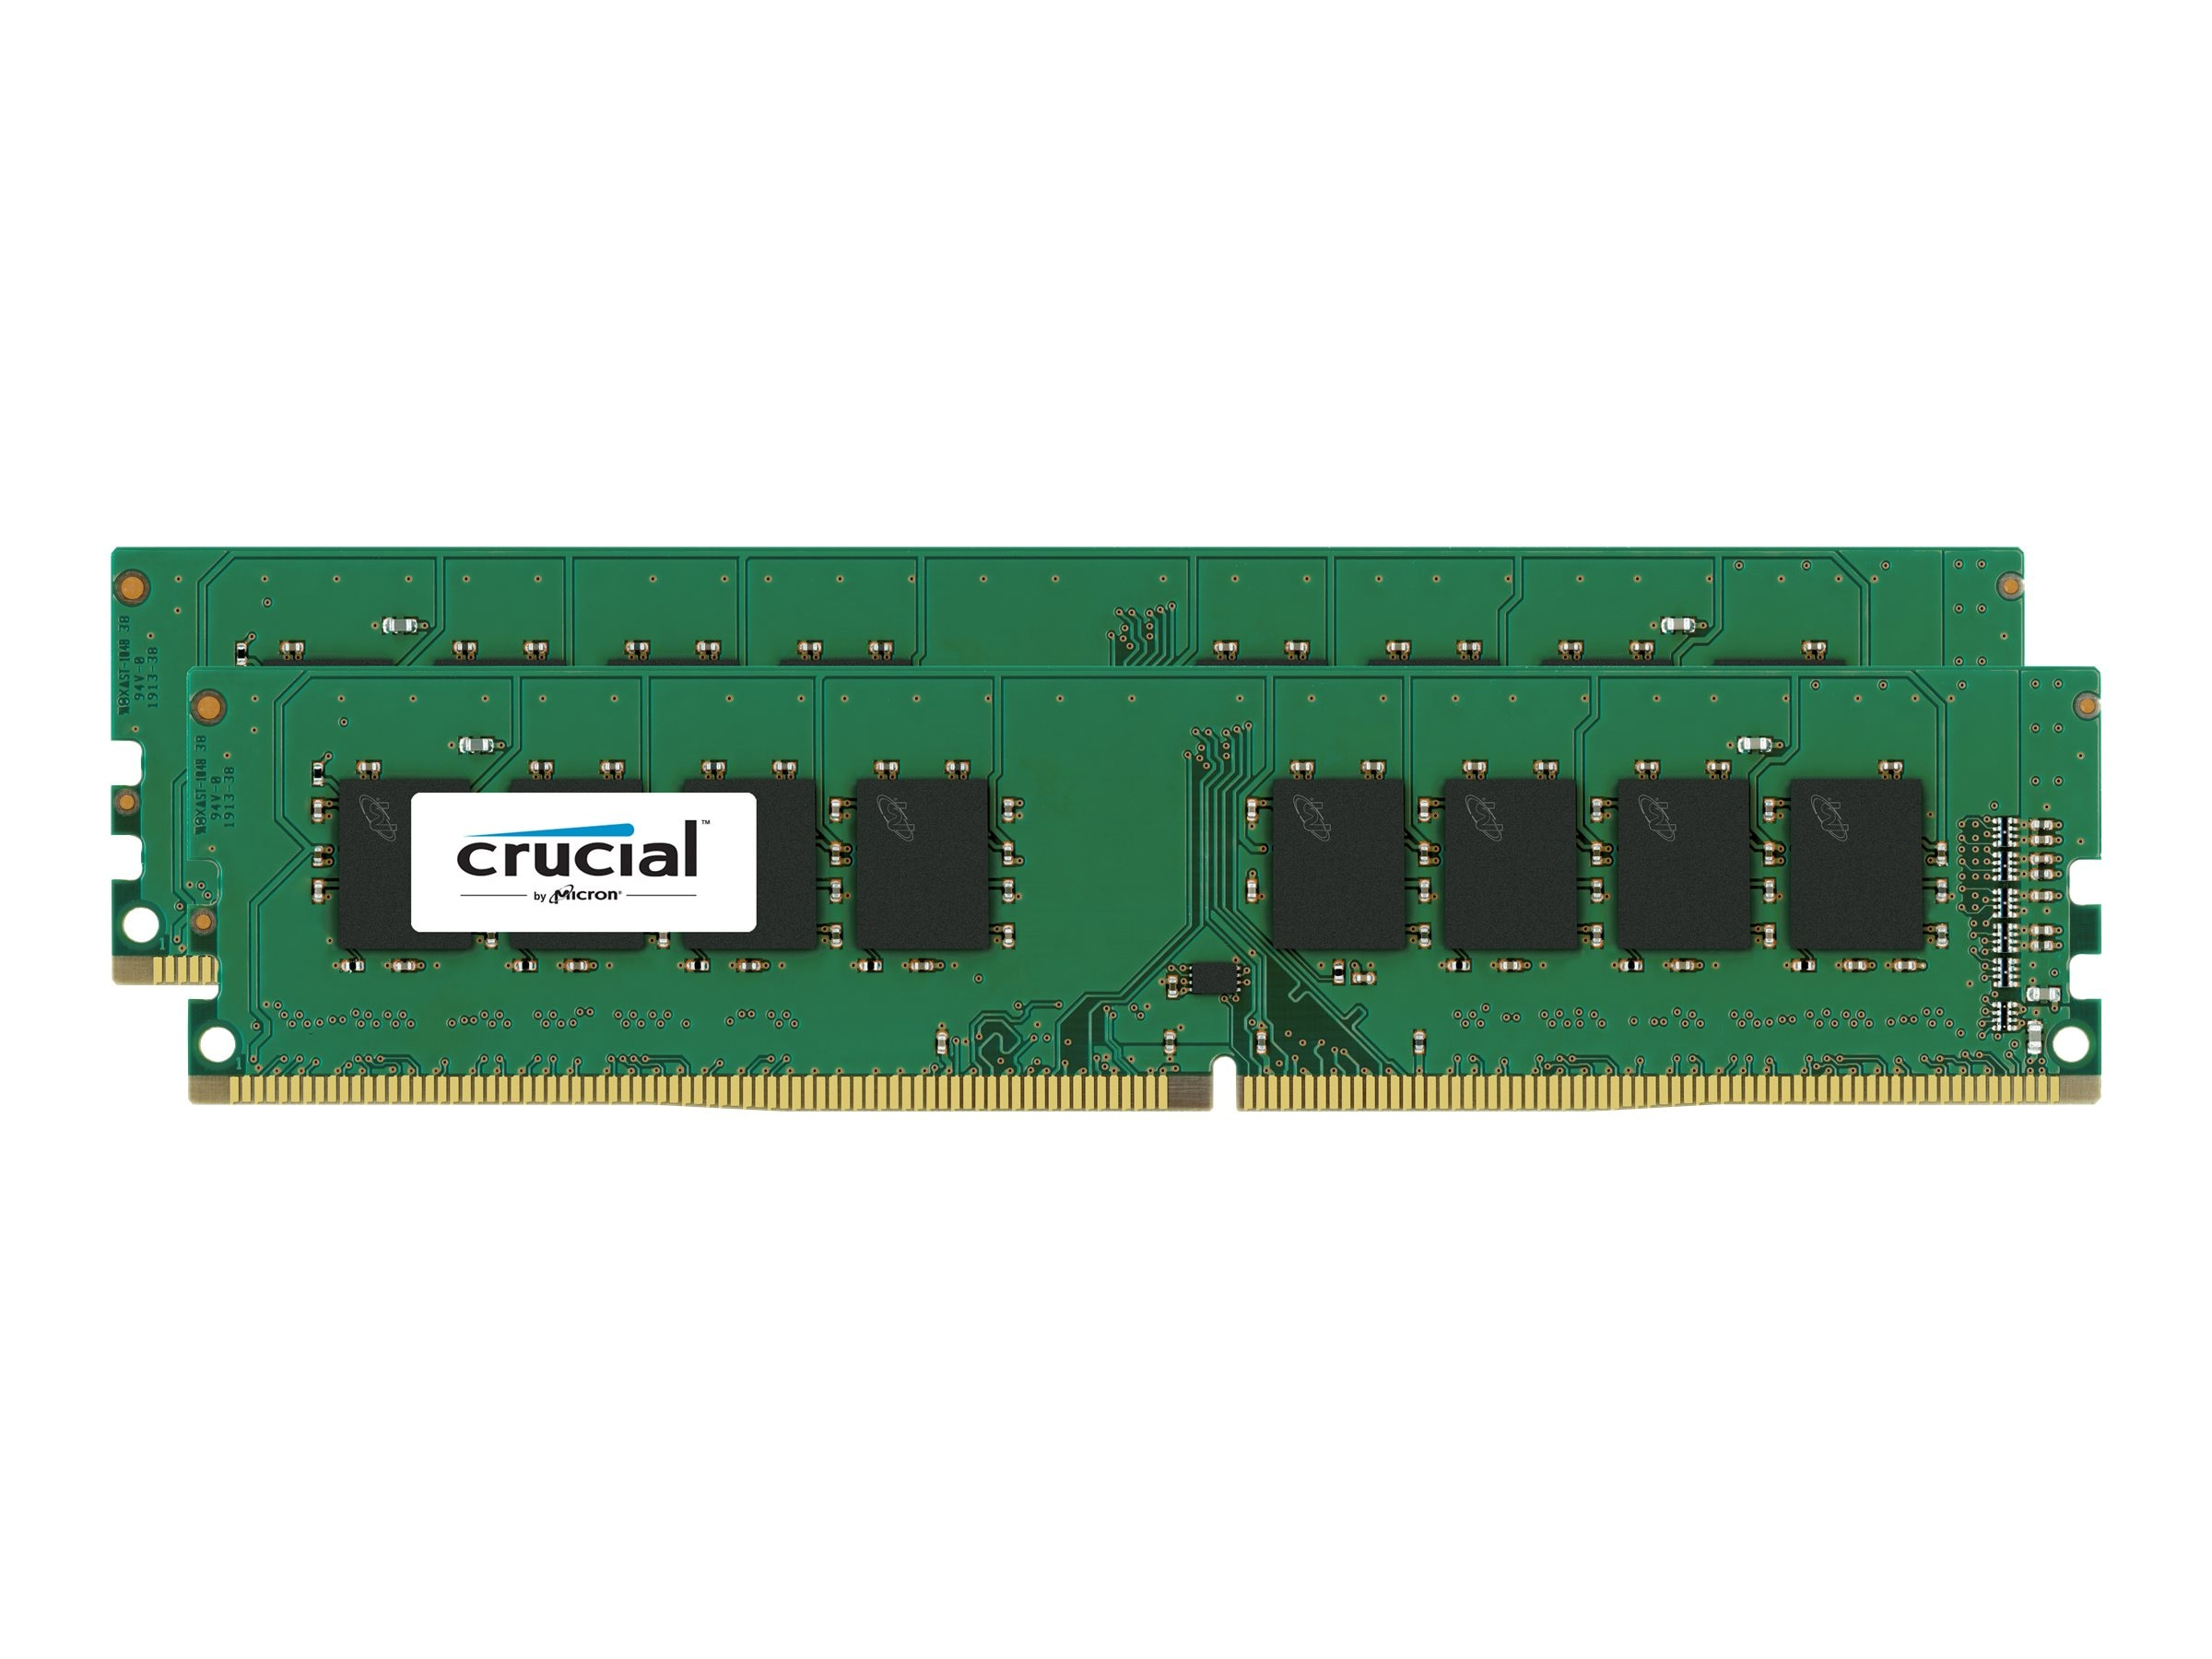 Crucial 8GB PC4-17000 288-pin DDR4 SDRAM DIMM Kit